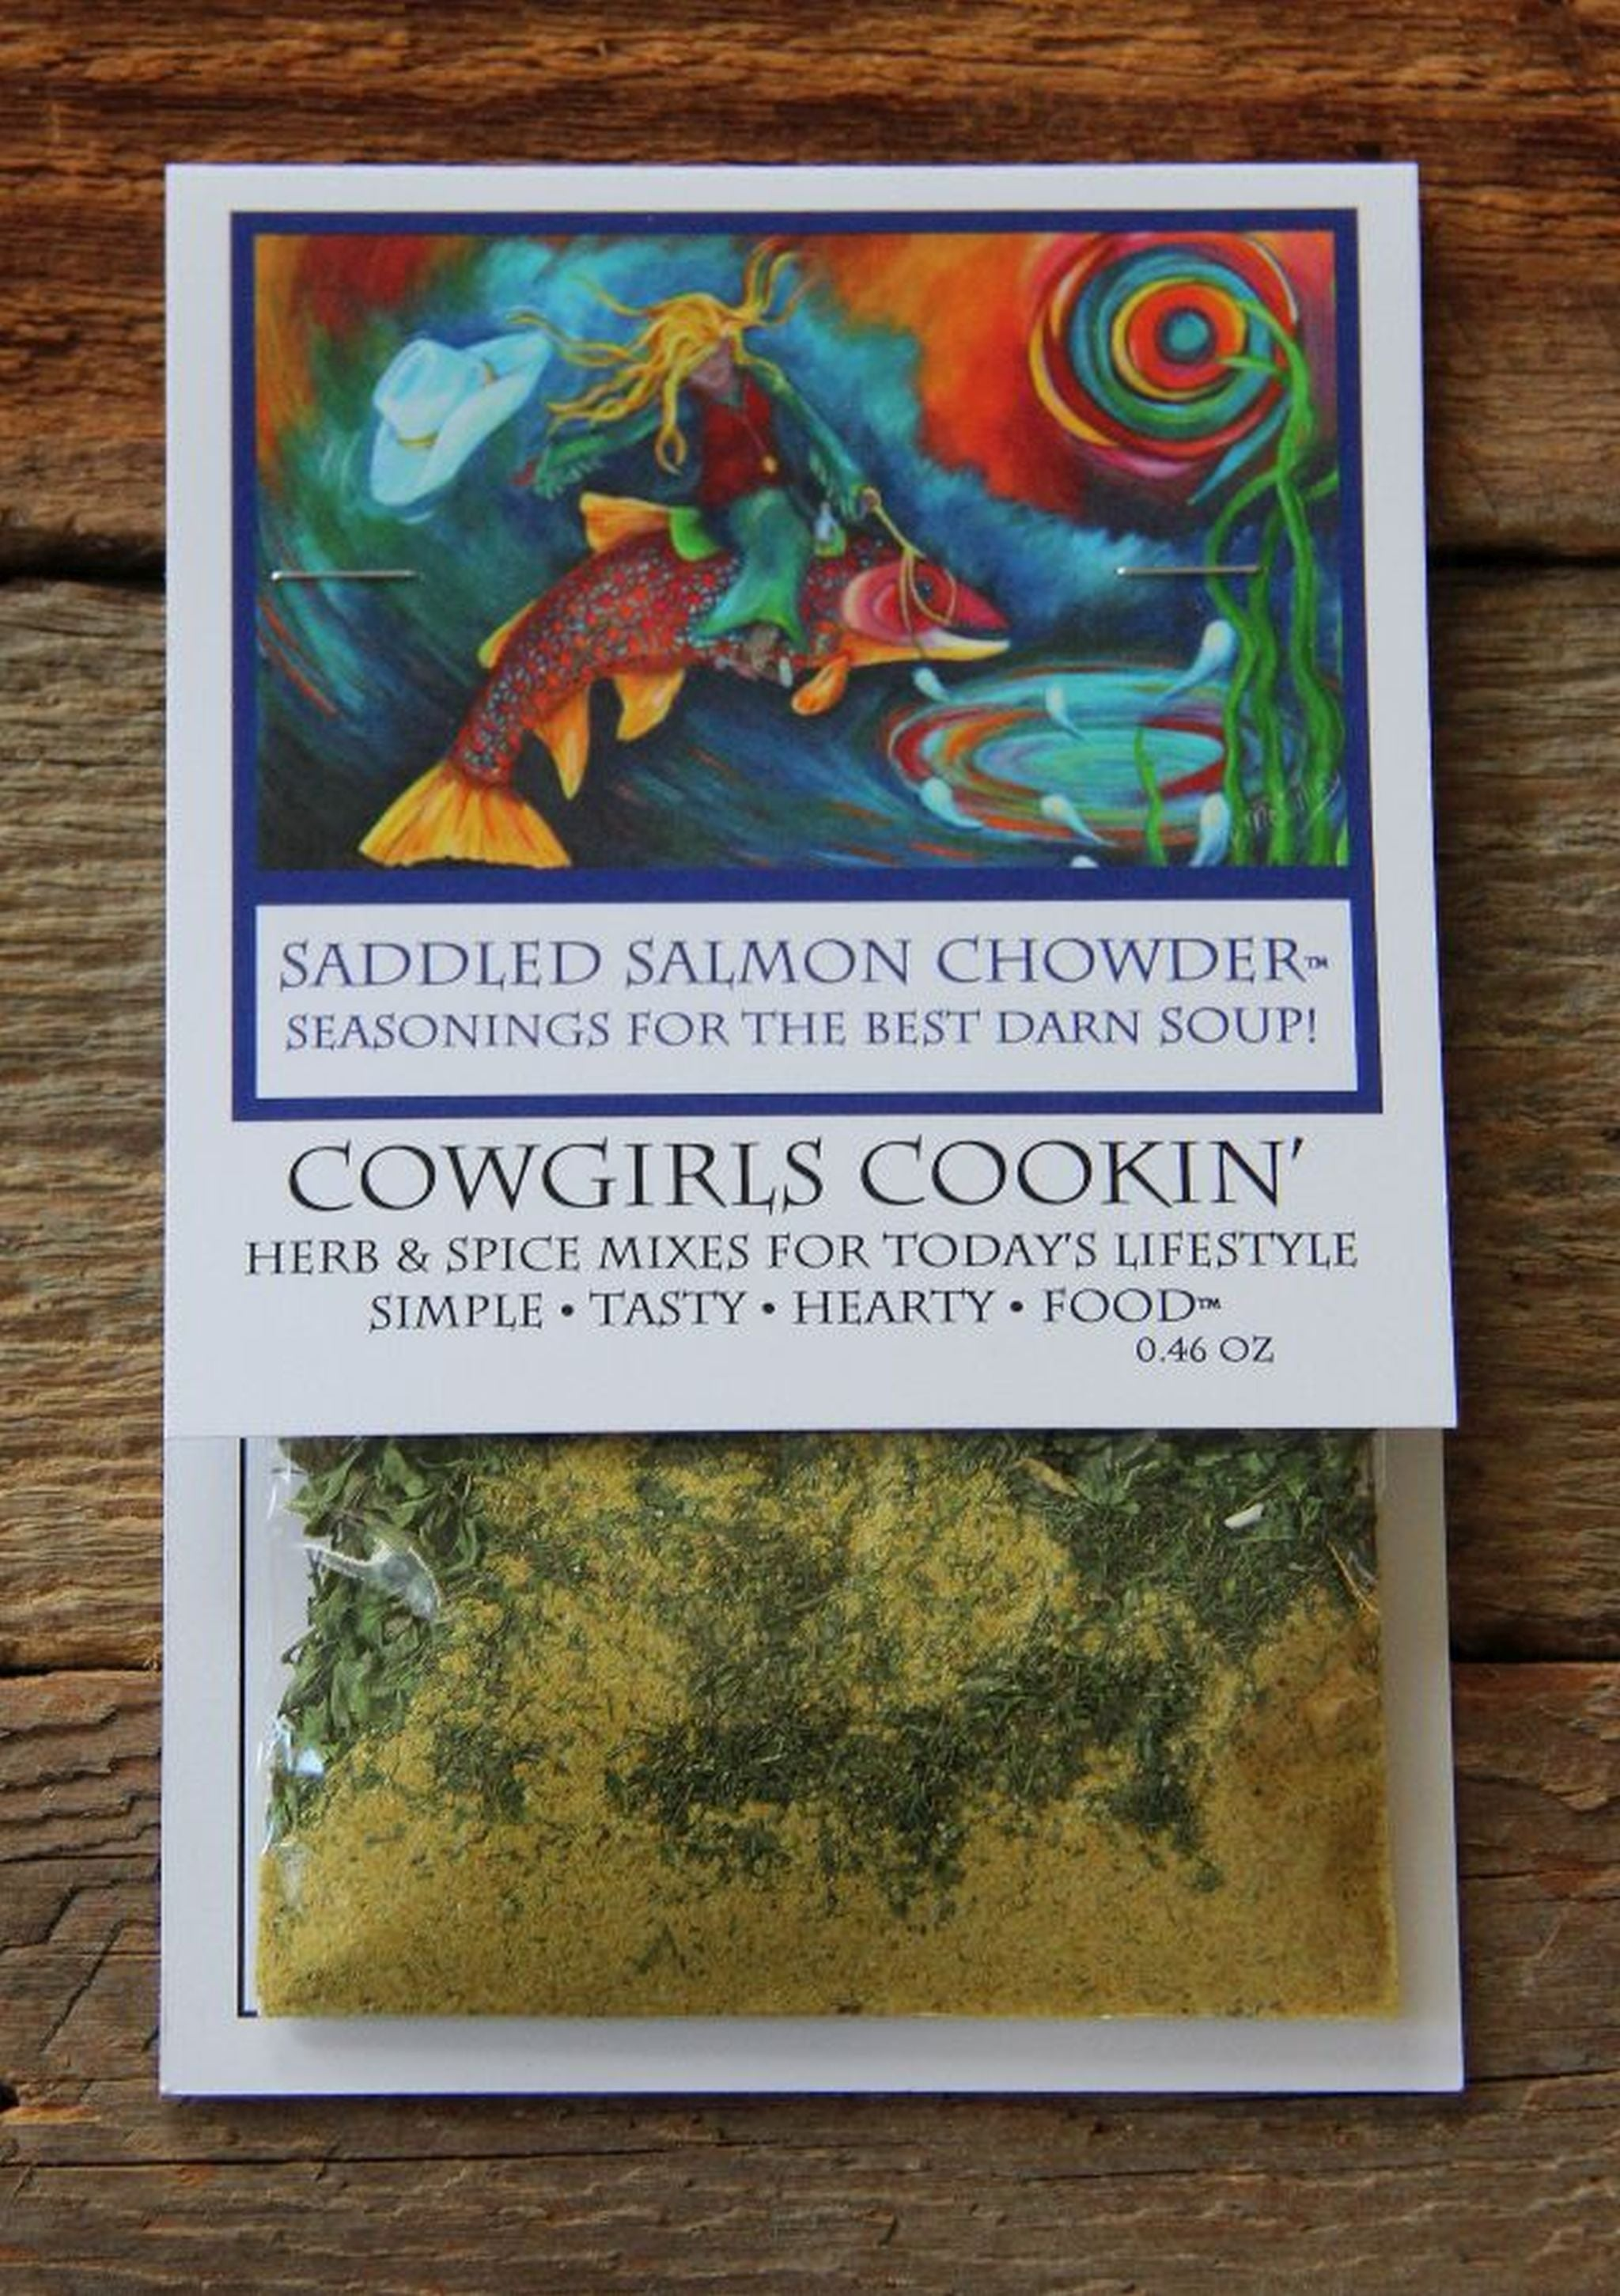 Cowgirls Cookin',Clam chowder, clam chowder spokane, salmon chowder, best salmon recipe, left over salmon recipe, northwest salmon recipe, unique soup, salmon chowder instant pot, salmon stew, seafood lovers, new taste sensations,